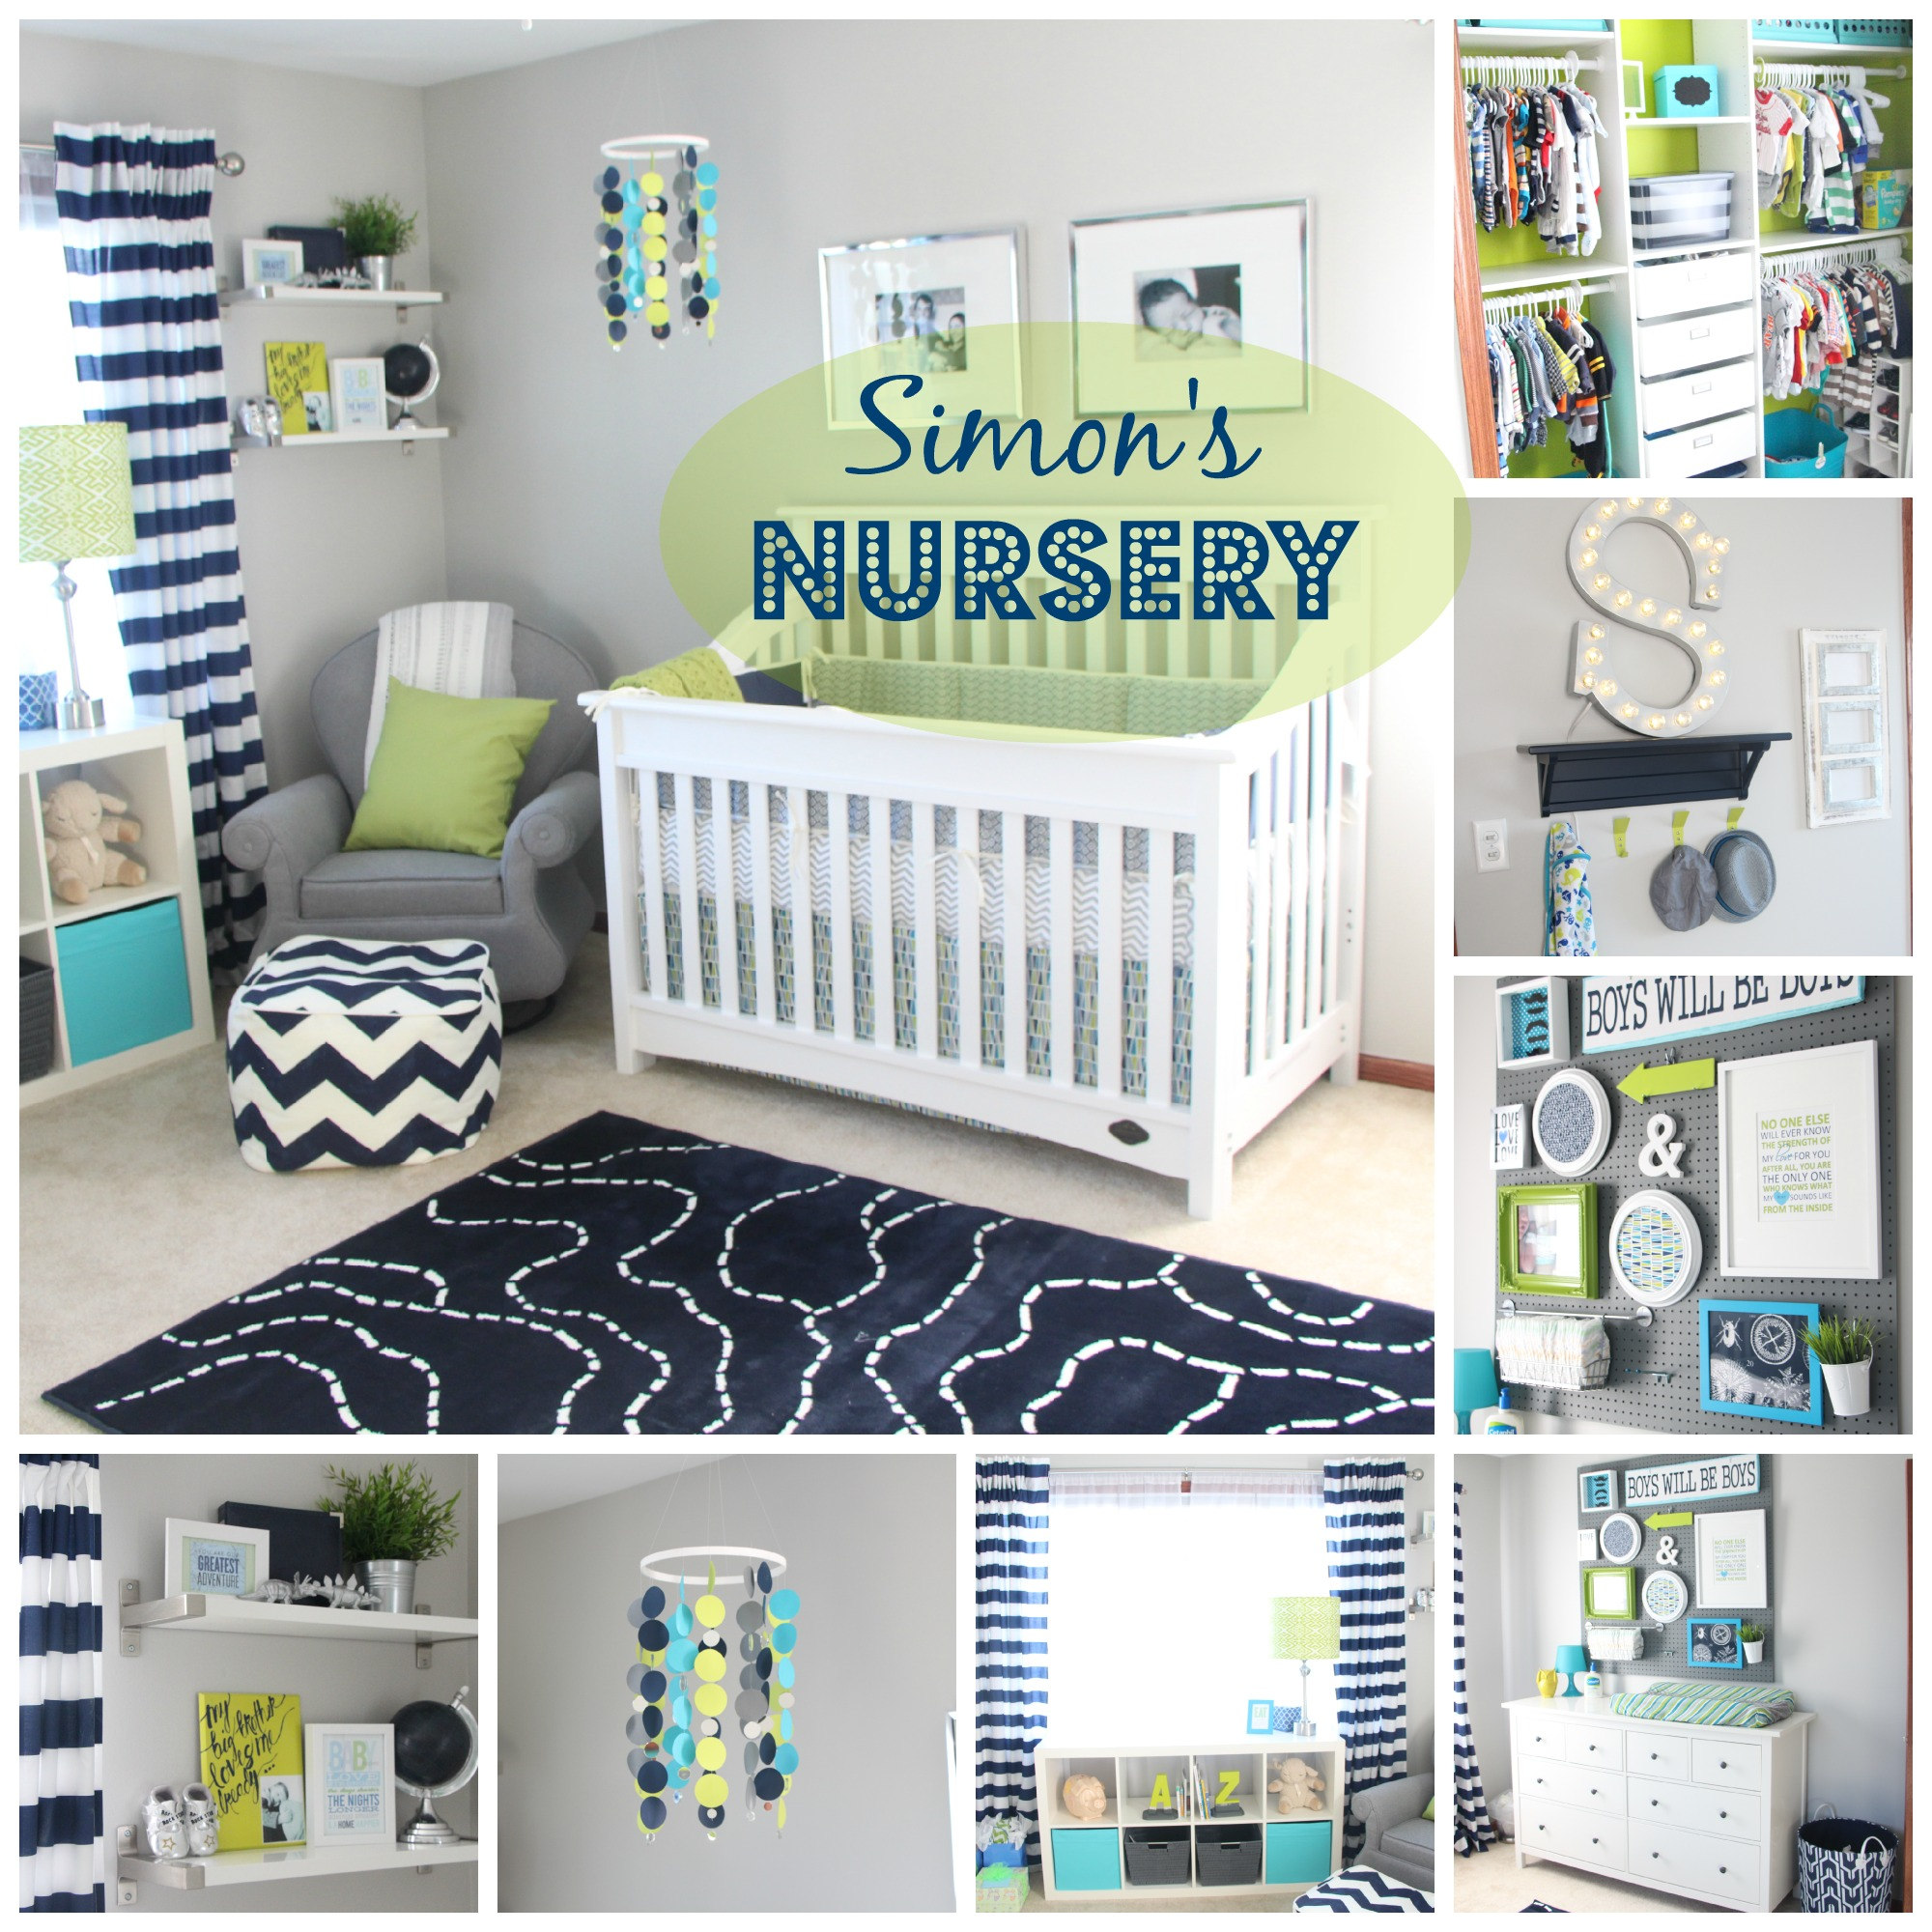 Simon S Nursery Reveal Diy Decorations Navy Green Gray Photos Details